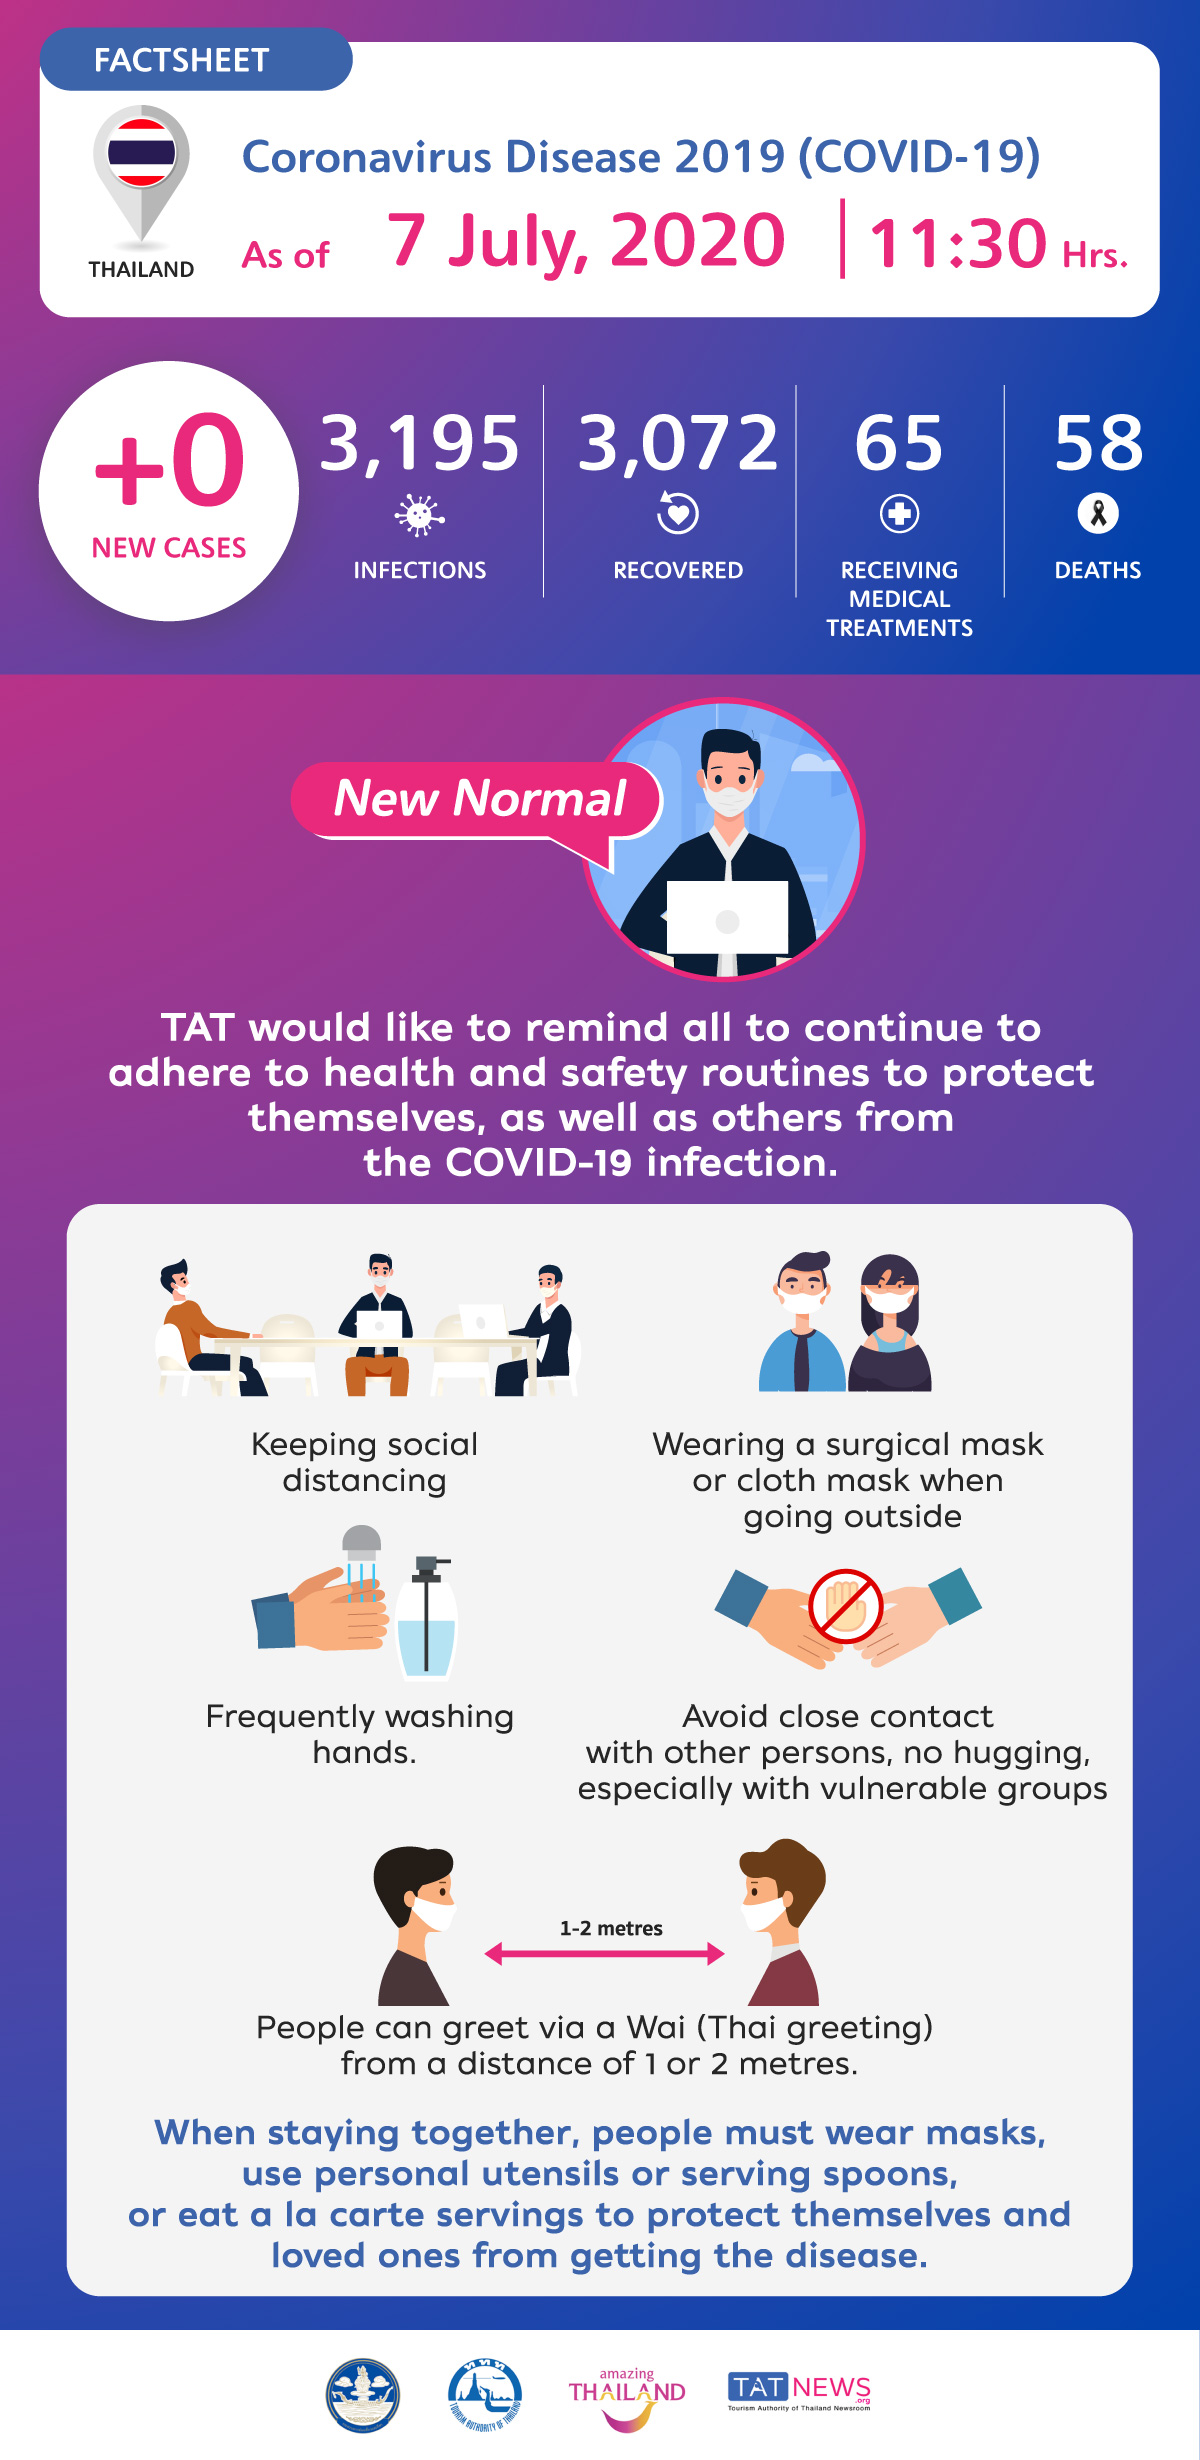 Coronavirus Disease 2019 (COVID-19) situation in Thailand as of 6 July 2020, 11.30 Hrs.